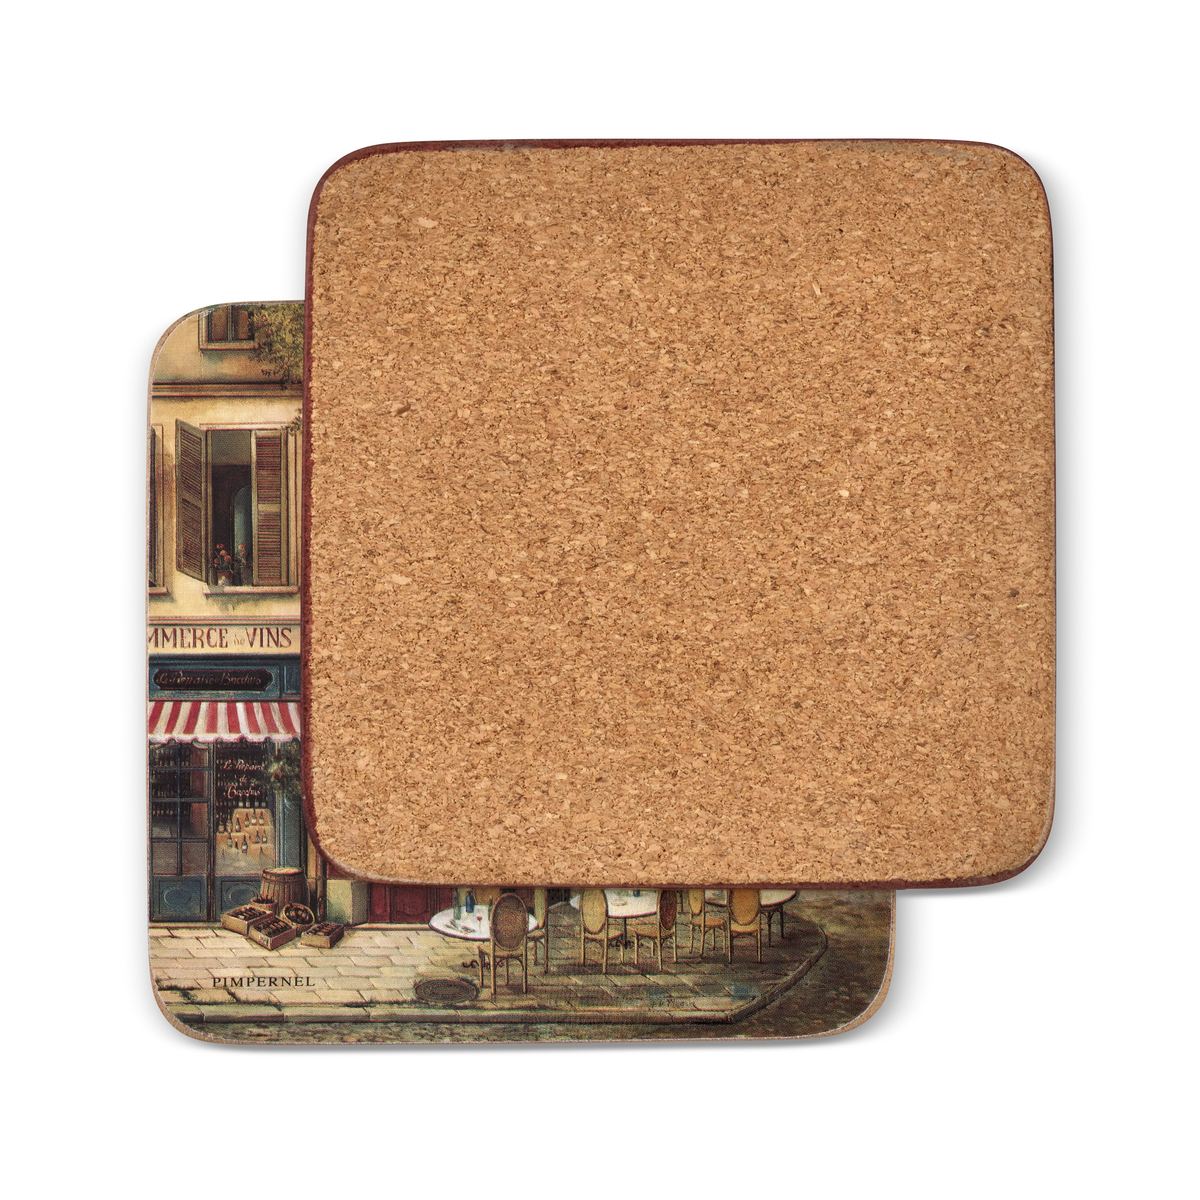 Pimpernel Parisian Scenes Coasters Set of 6 image number 1